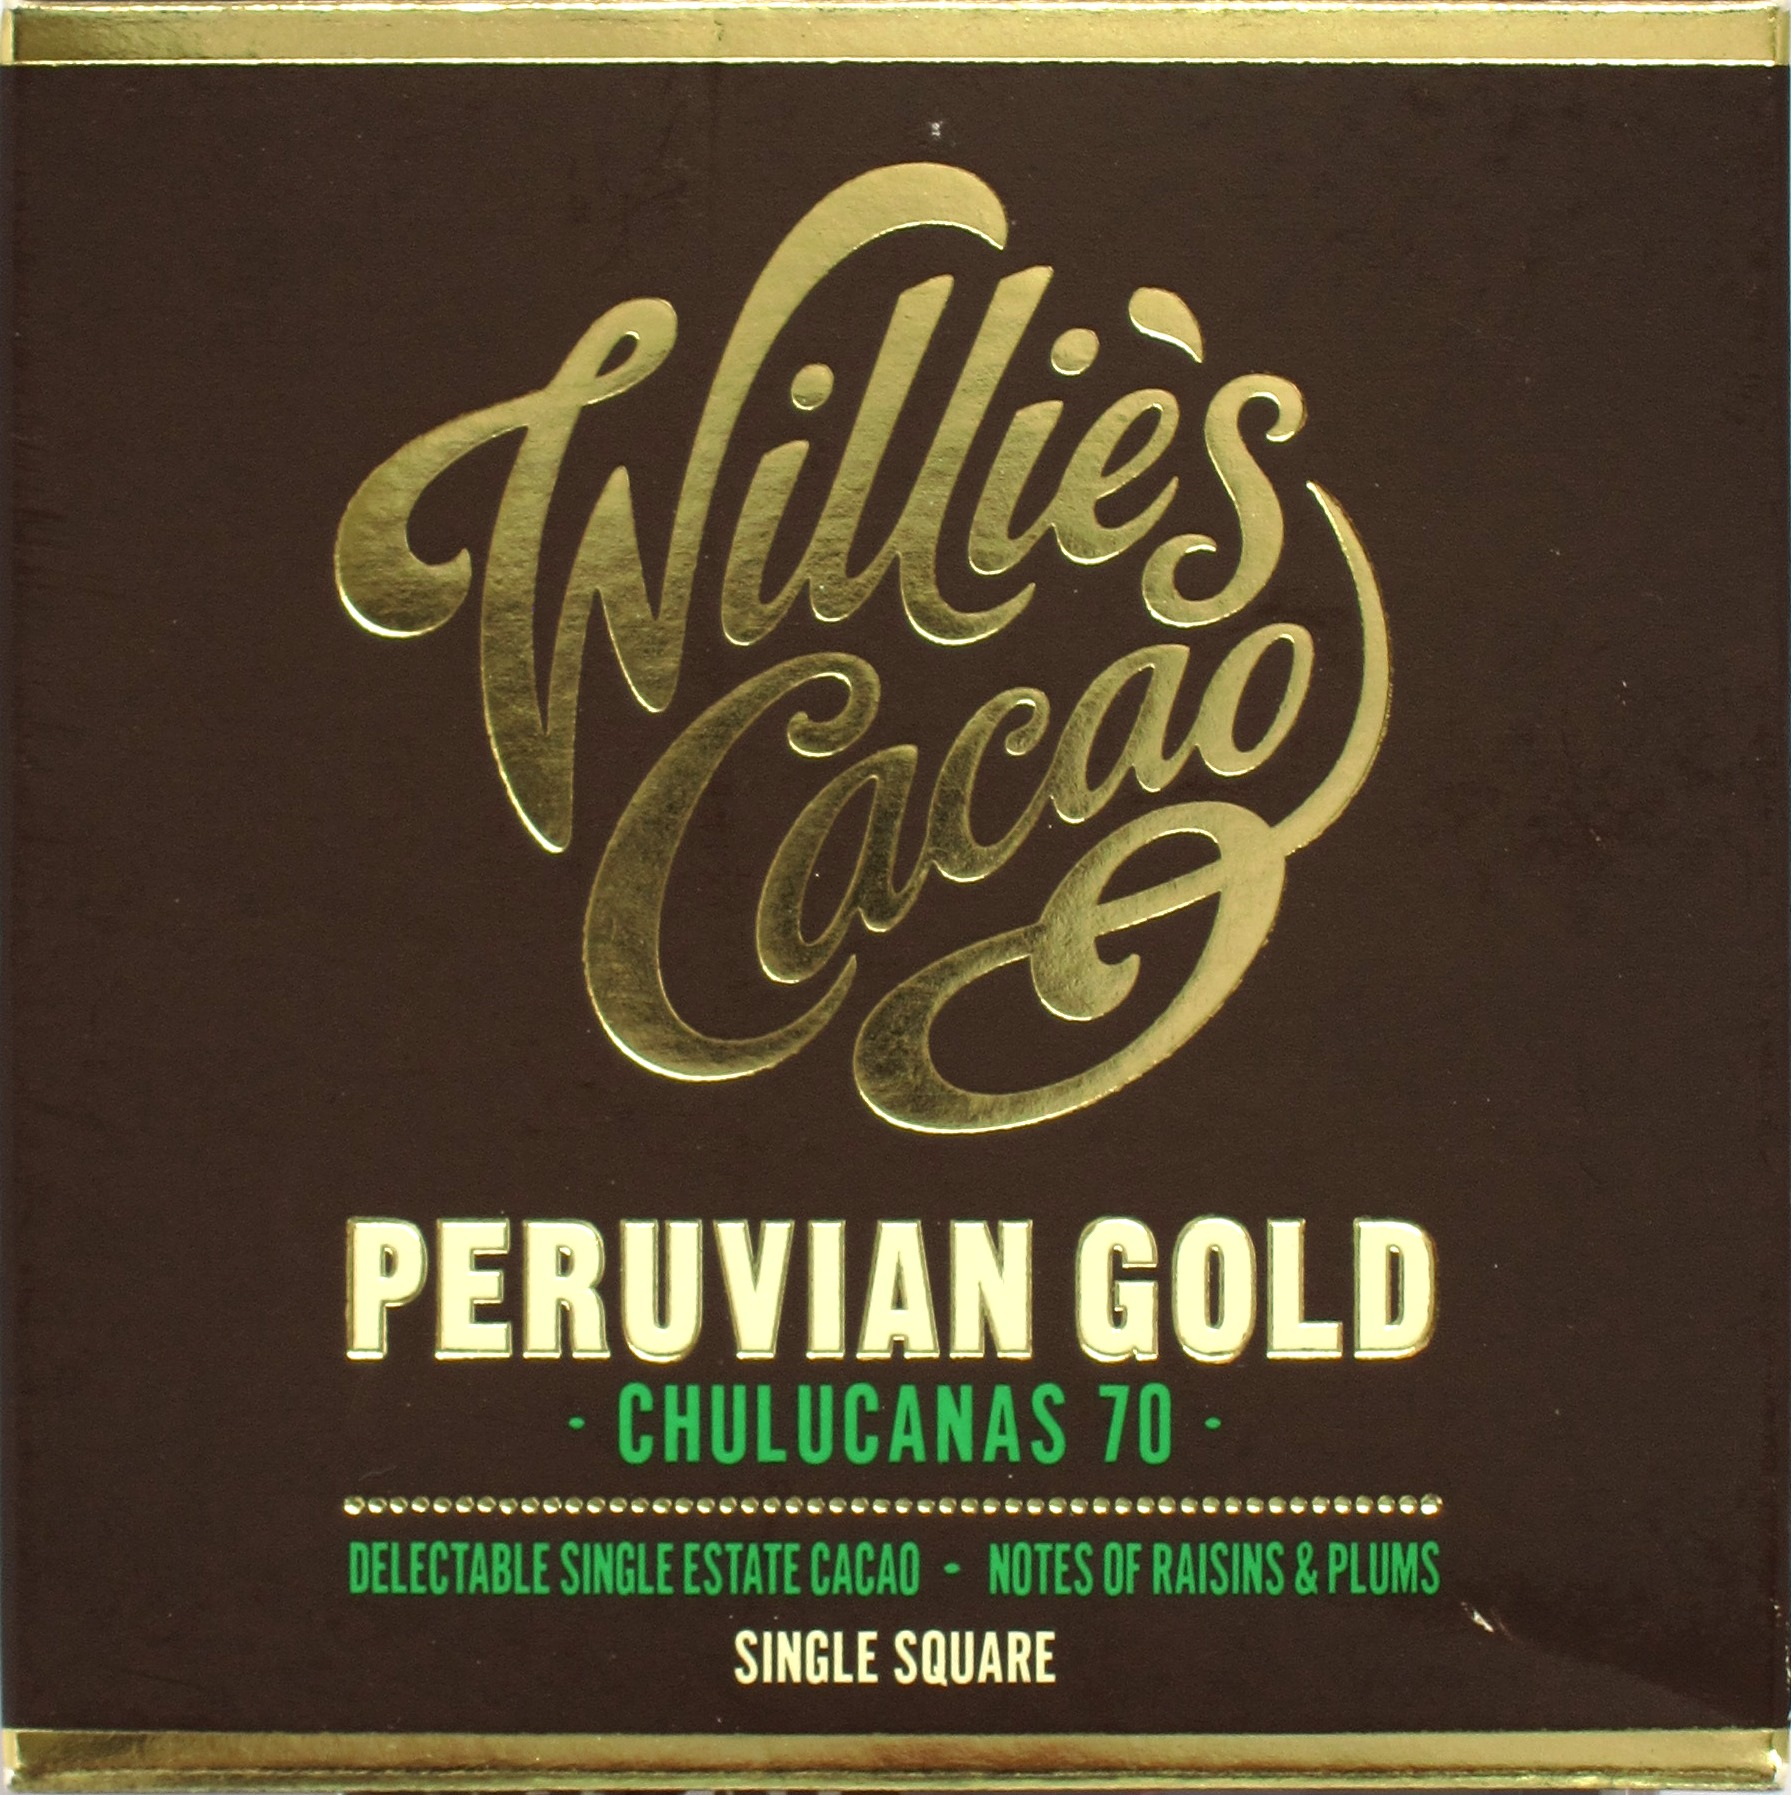 Willie's Peruvian Gold 70